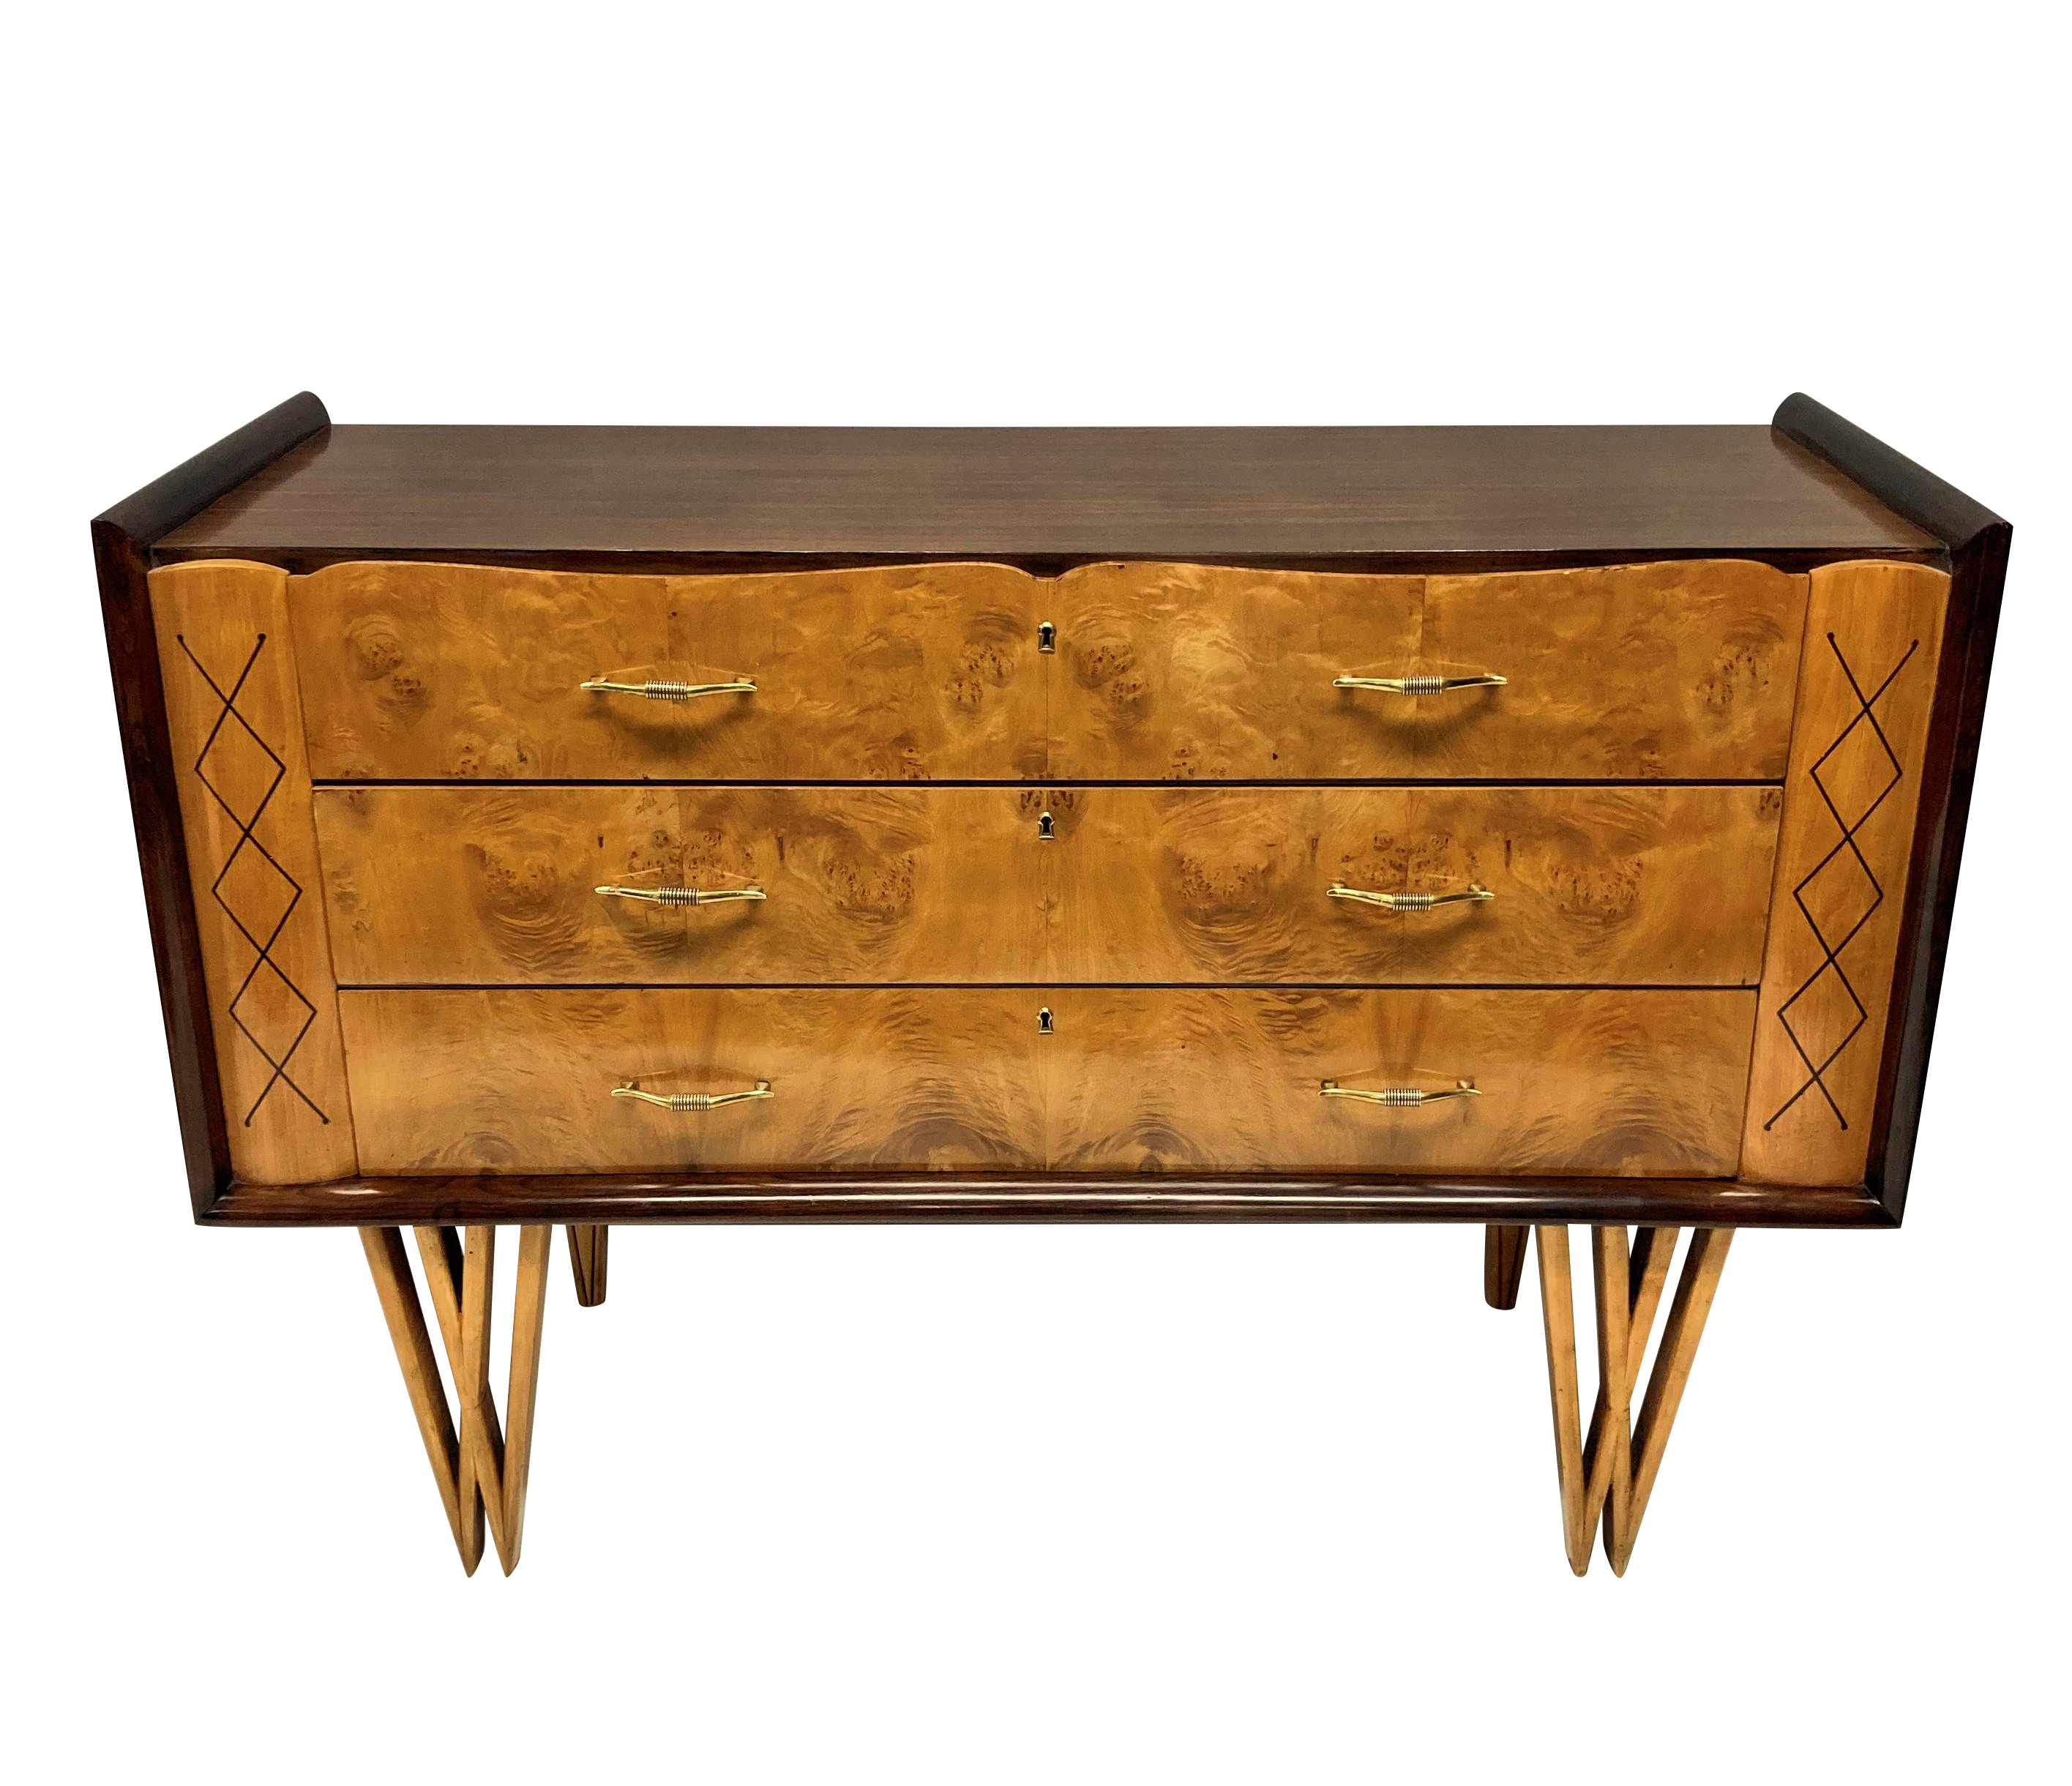 A STYLISH FRENCH MID-CENTURY COMMODE